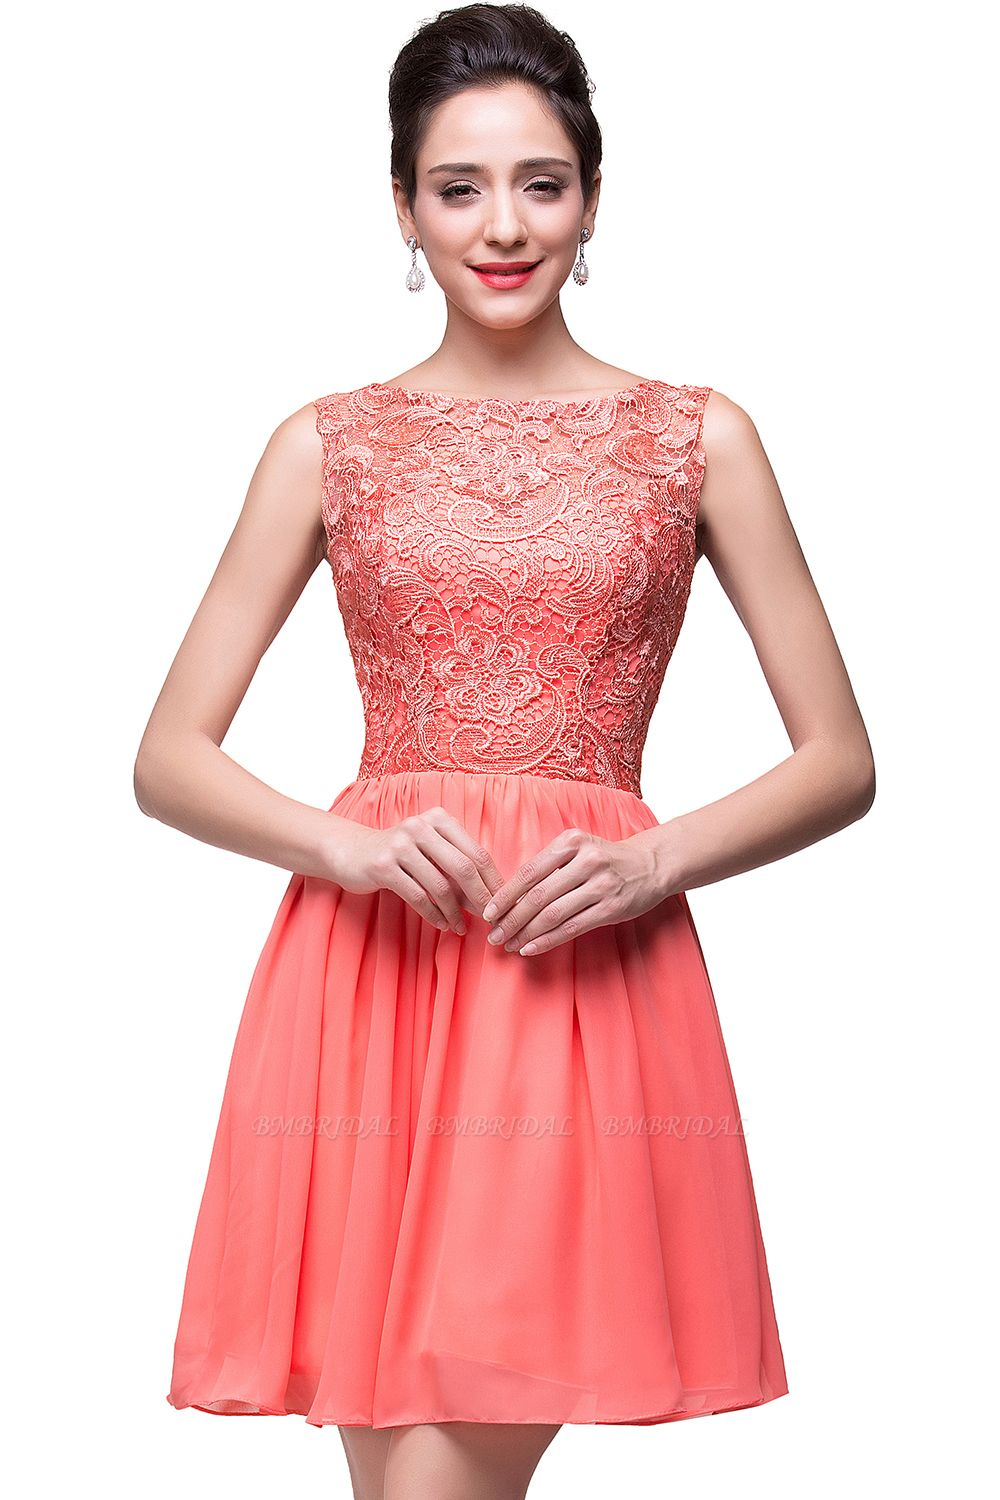 Affordable Chiffon Lace Short Bridesmaid Dresses with Ruffle In Stock